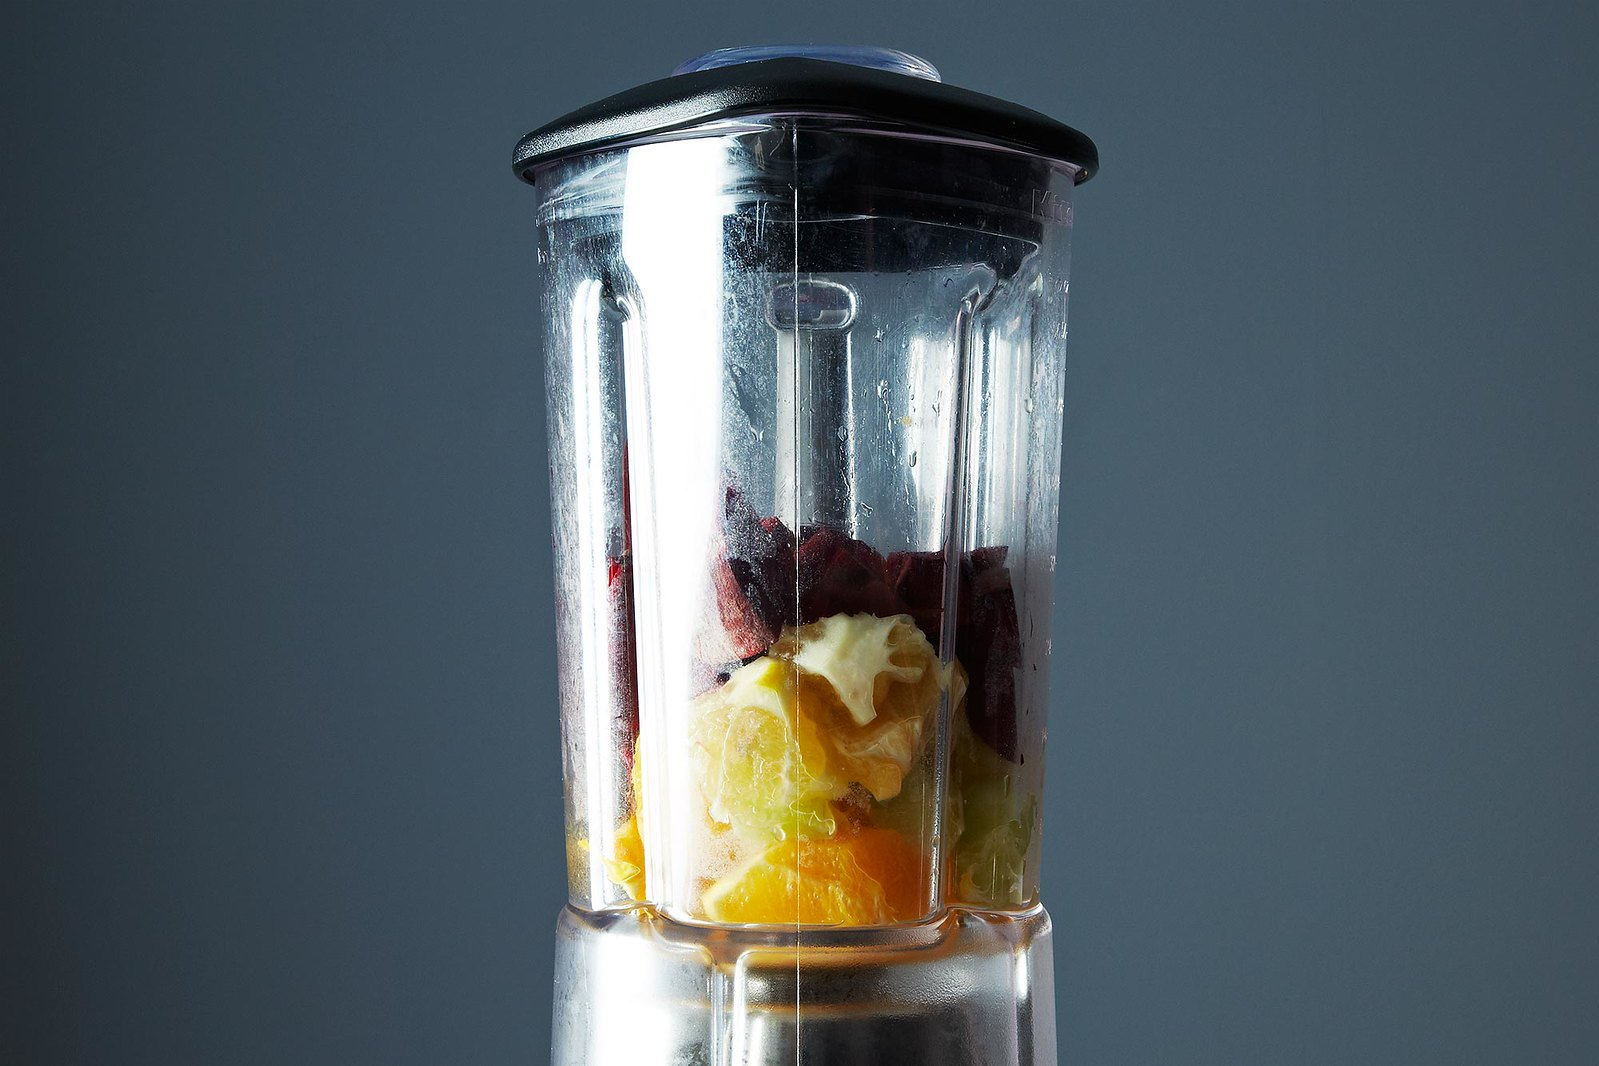 How to Make Juice Without a Juicer, from Food52